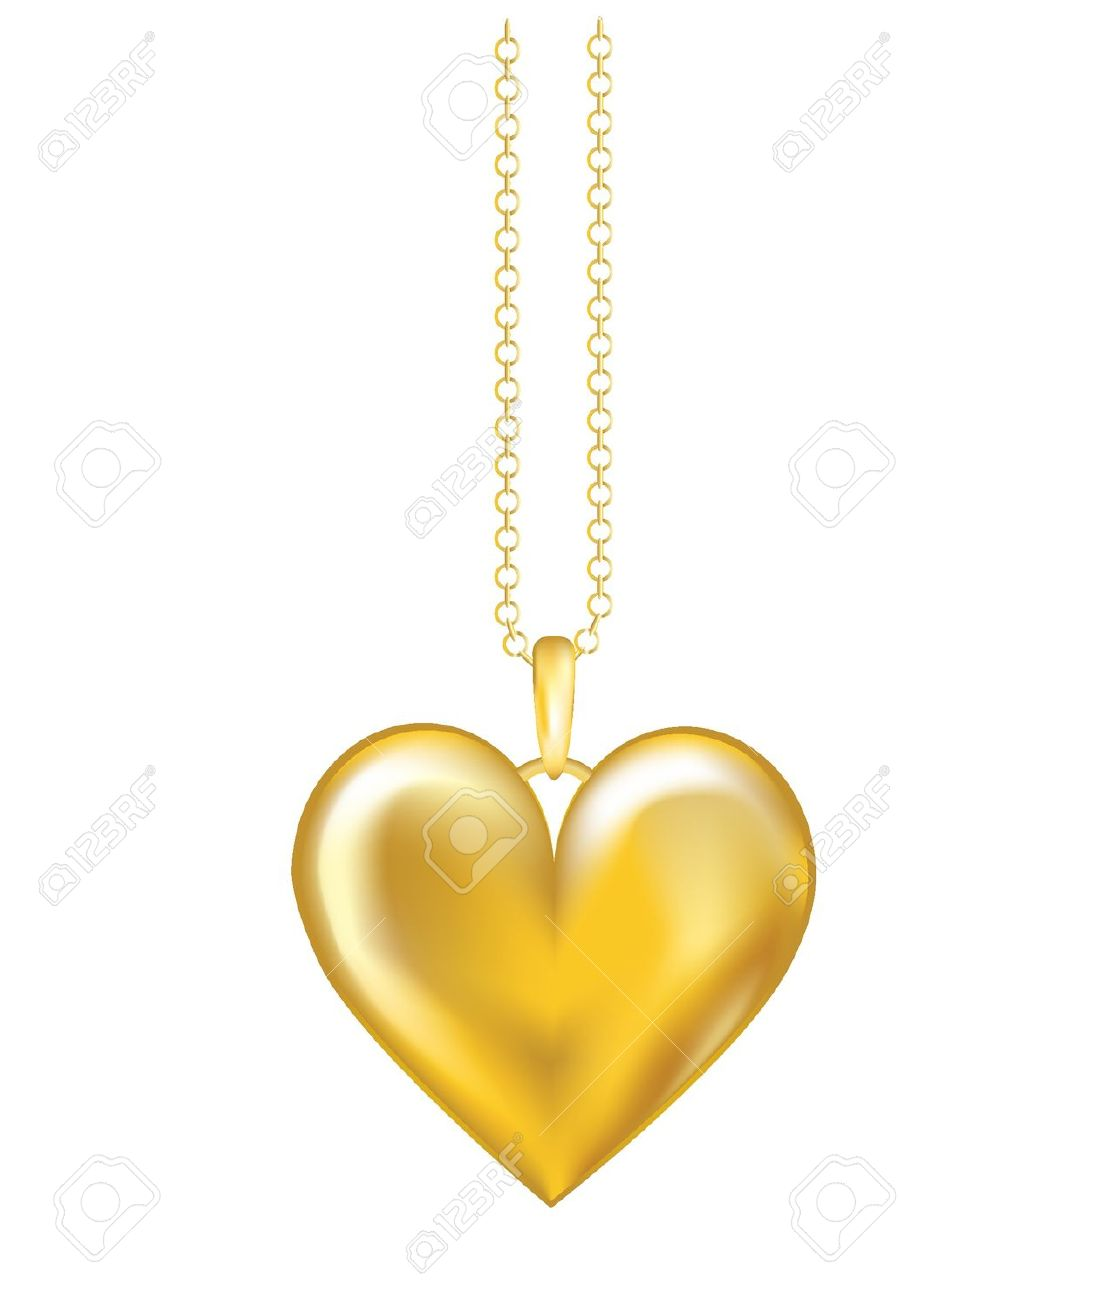 Free Gold Locket Cliparts, Download Free Clip Art, Free Clip.